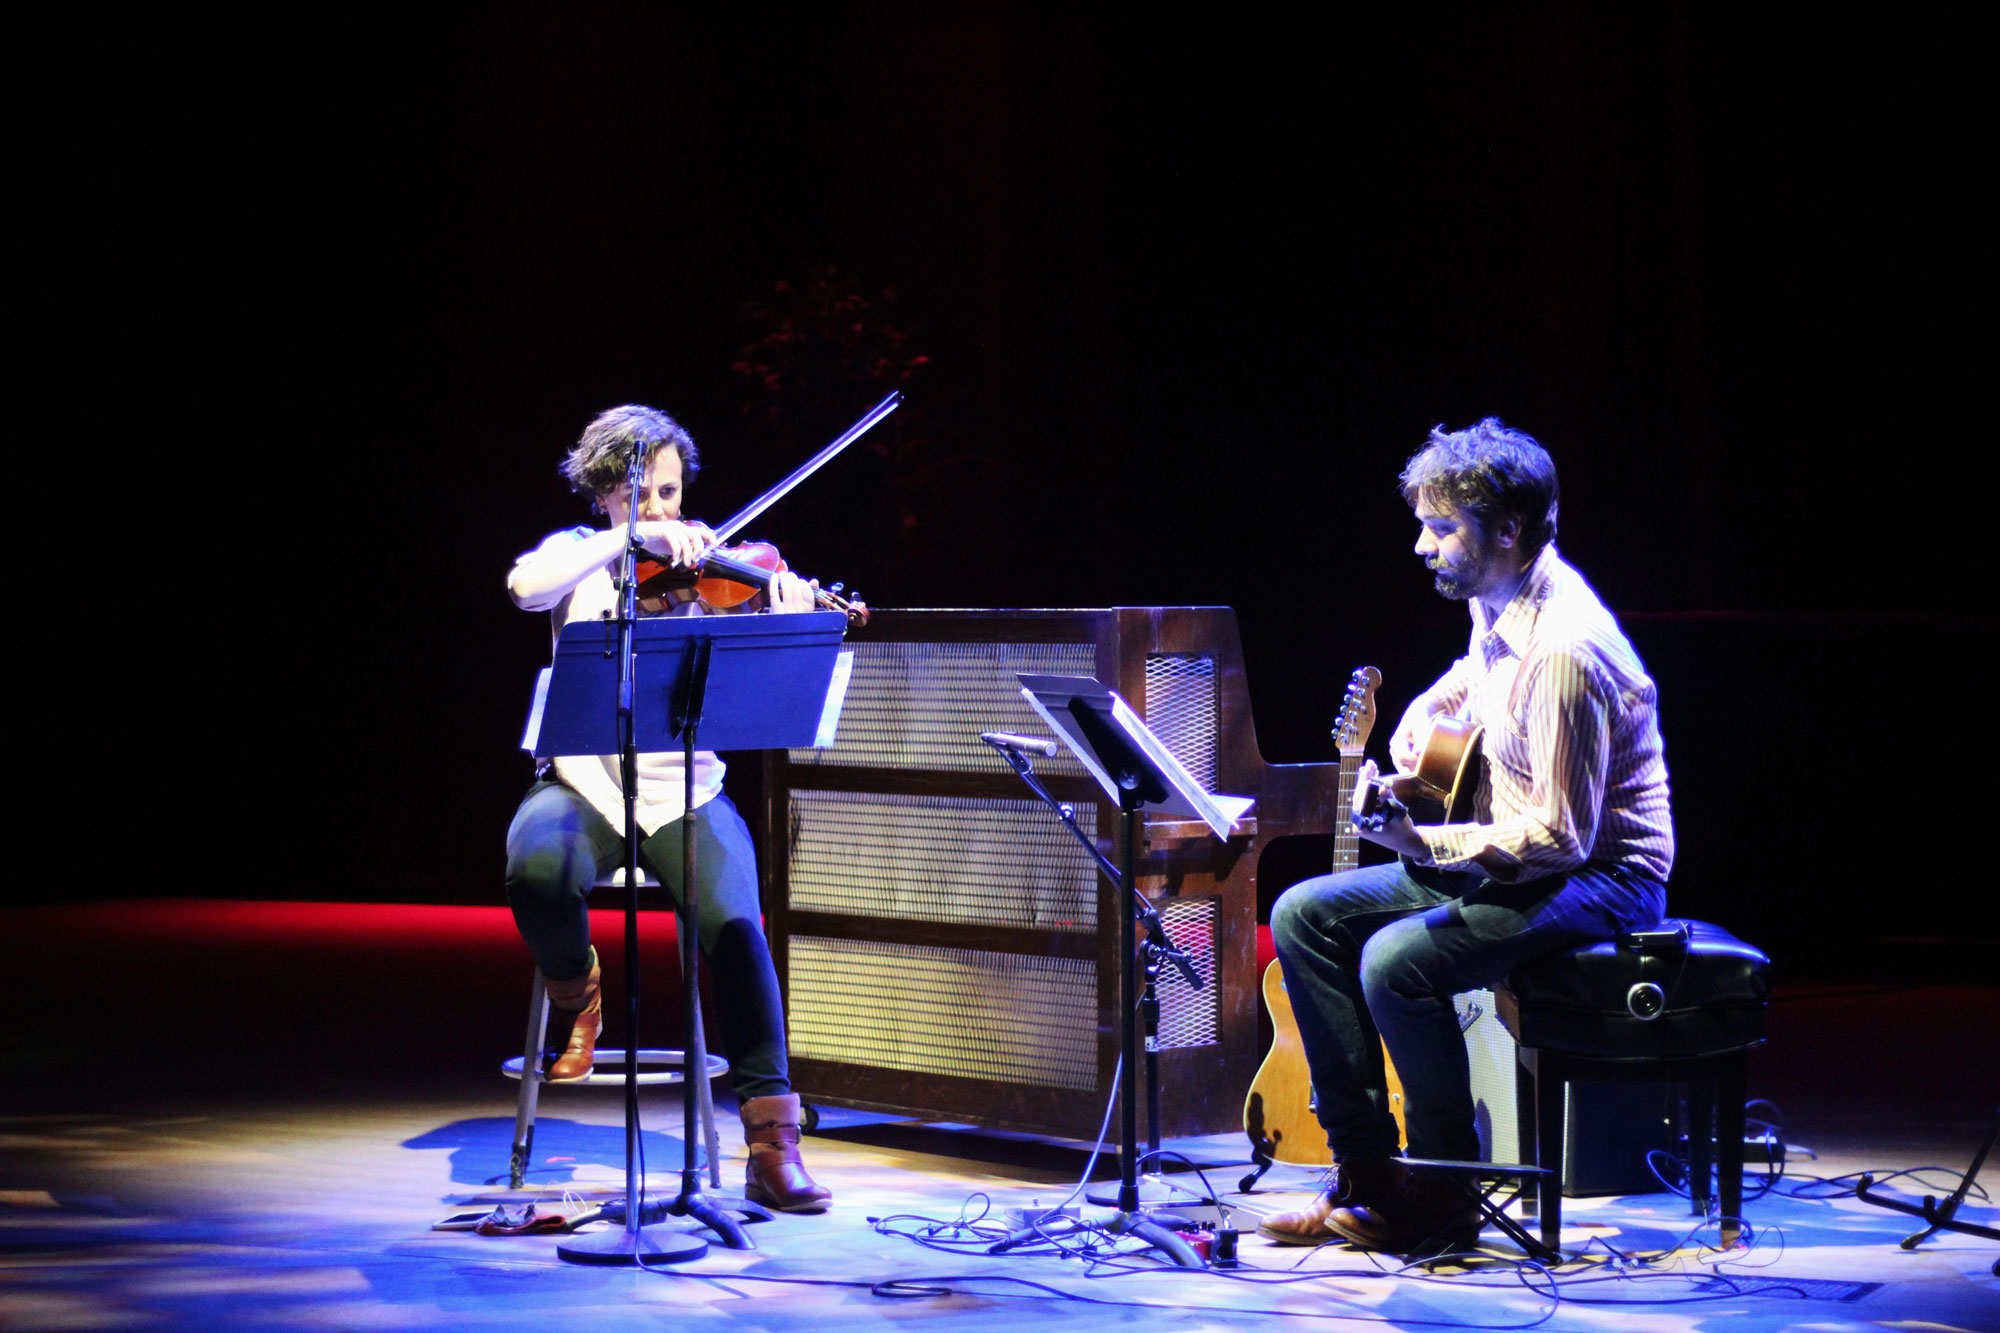 UCSC Musicians Influenced by Today's Socio-Political Tensions